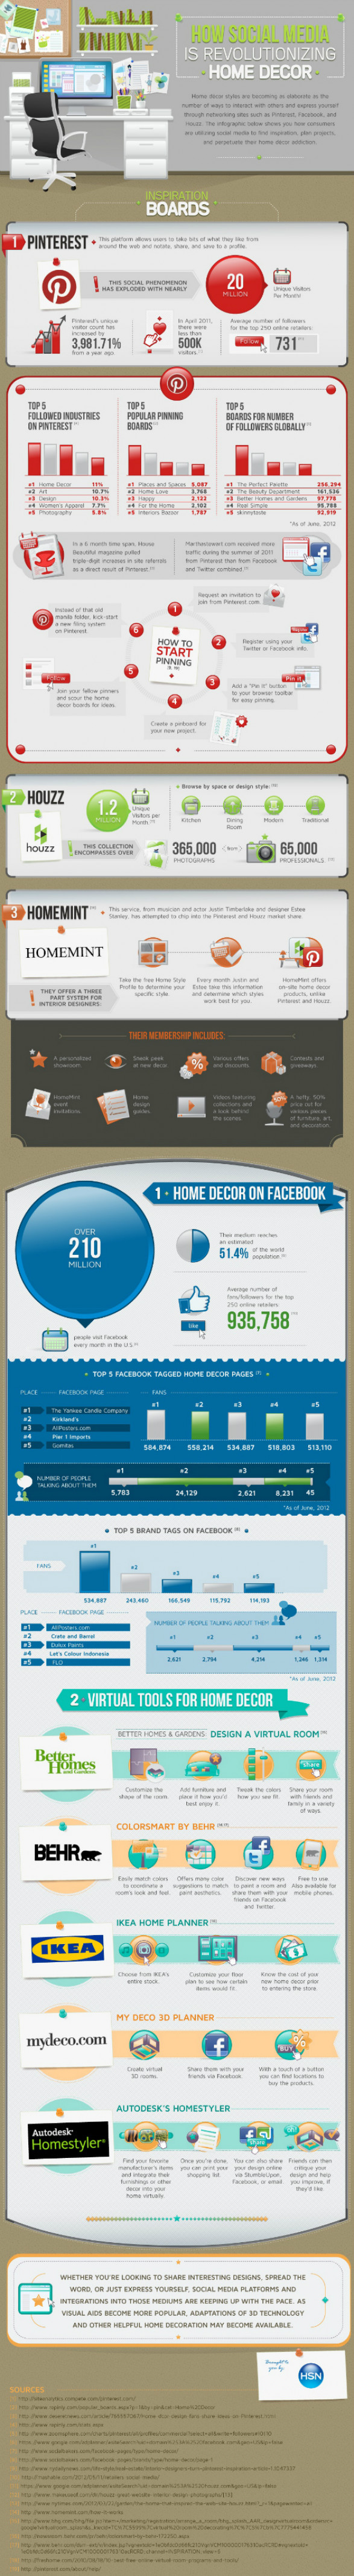 pinterest 39 s impact on home decor infographic